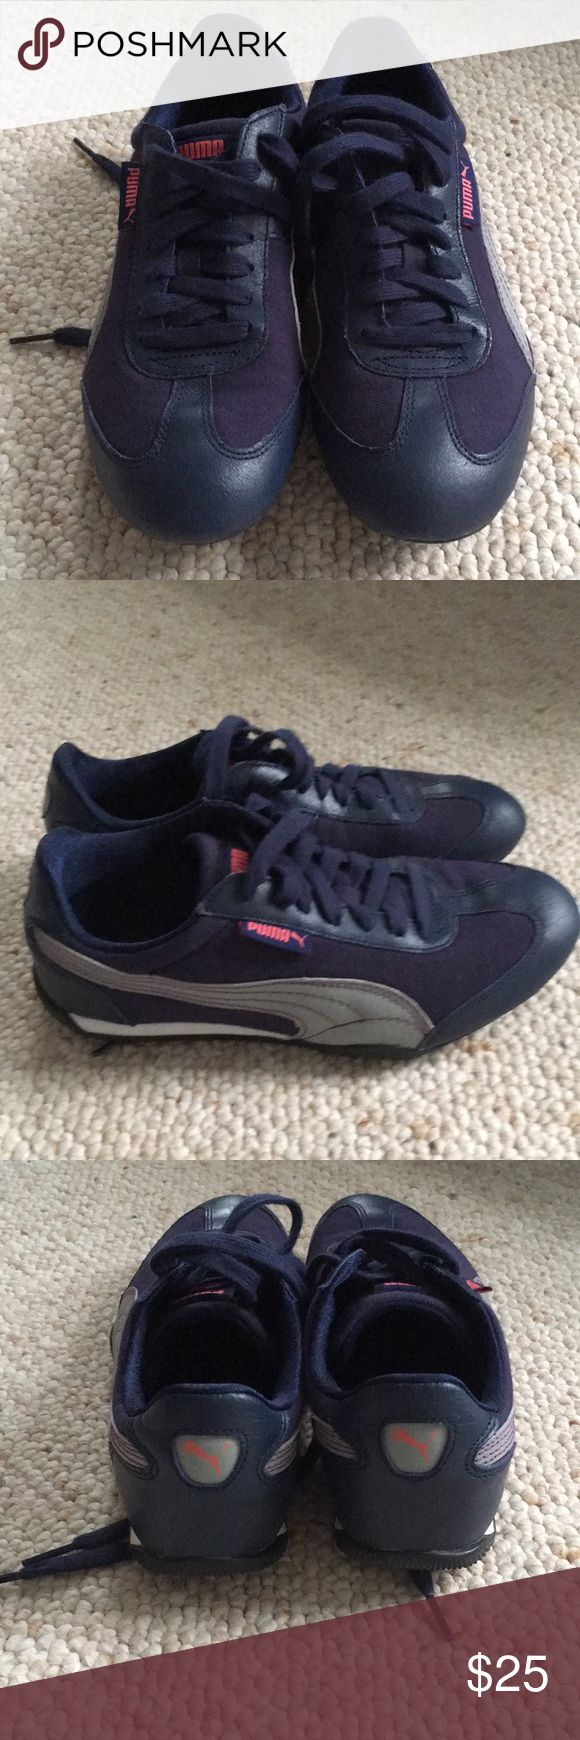 Puma lifestyle sneakers size 7 Puma lifestyle sneakers US size 7 EUR 37.5. Textile+leather outer. Navy Blue with gray and some pink stitching. In great condition. Only worn 3-4 times. Puma Shoes Sneakers